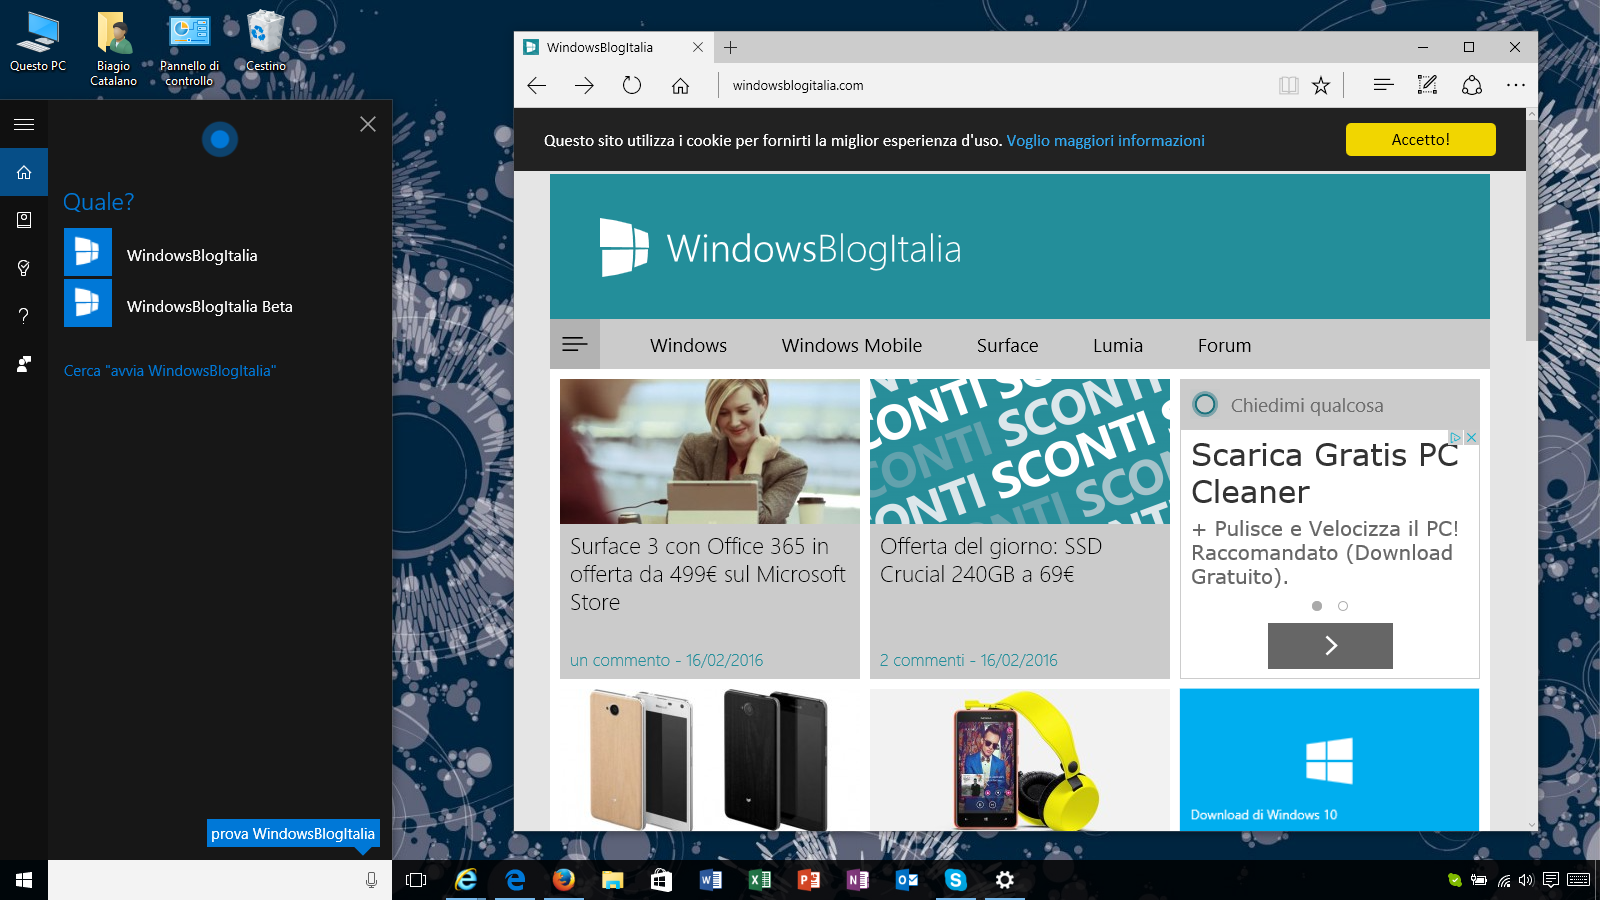 windows 10 app Cortana